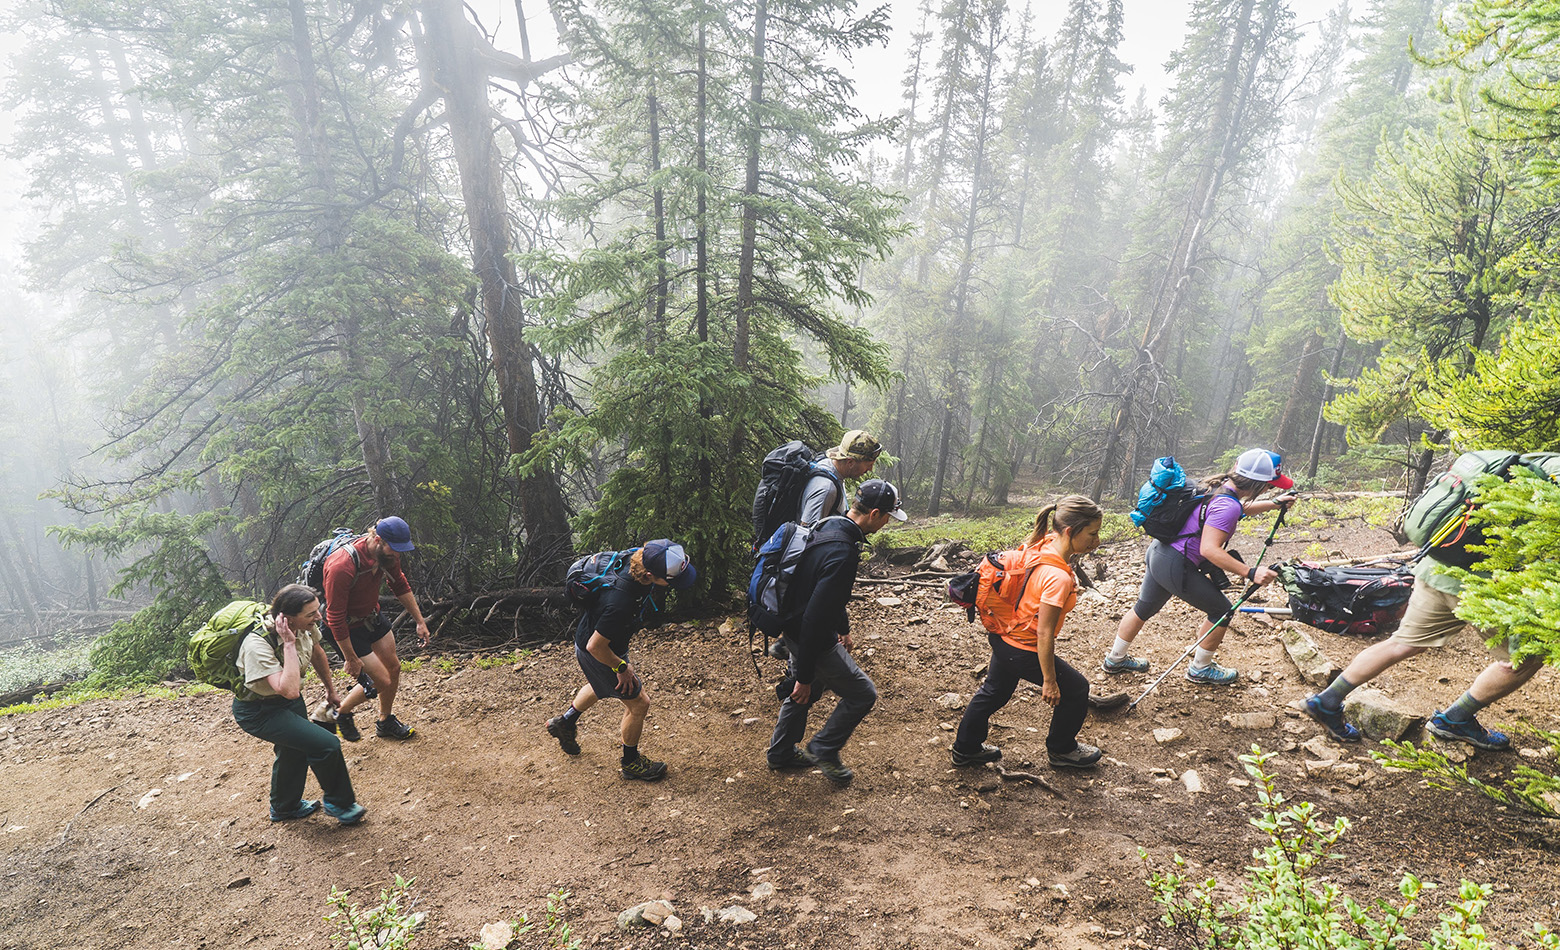 It's best to start your summit hike early in the morning to avoid afternoon lightning storms.